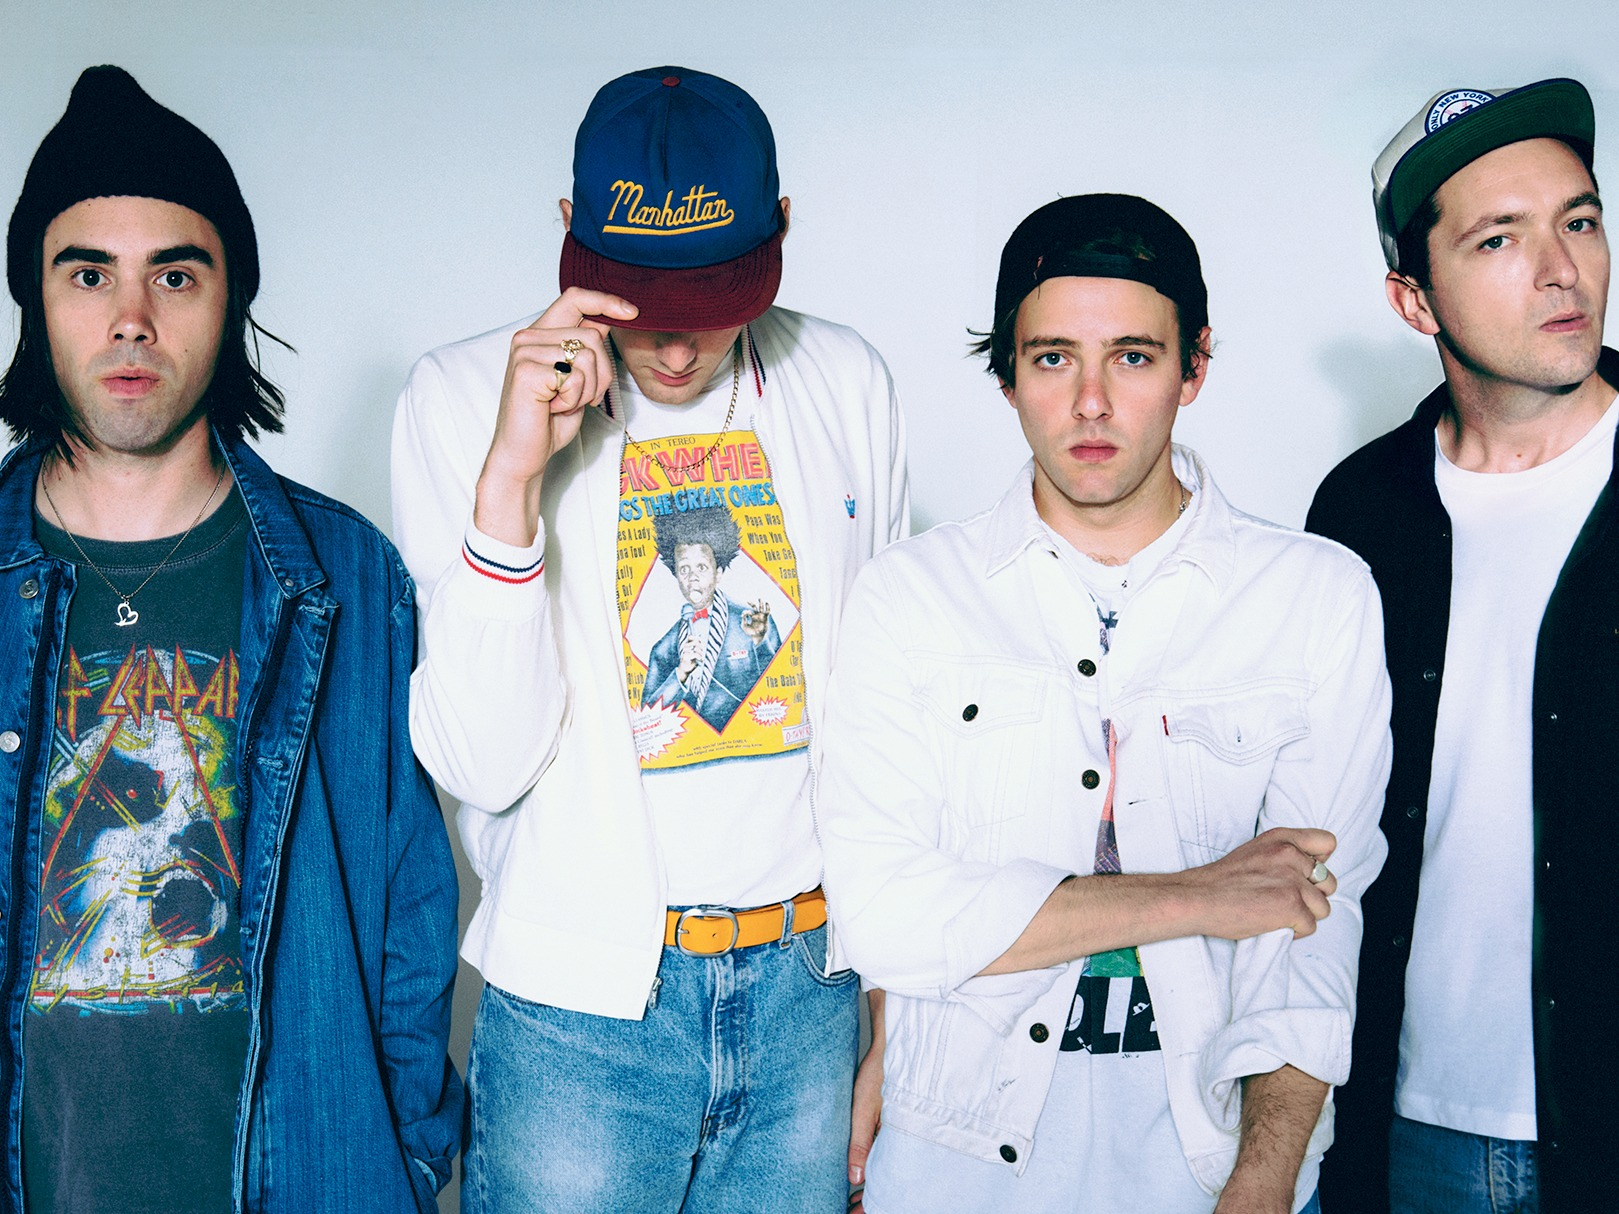 SONG OF THE DAY: 'Restless Babe' by SKATERS